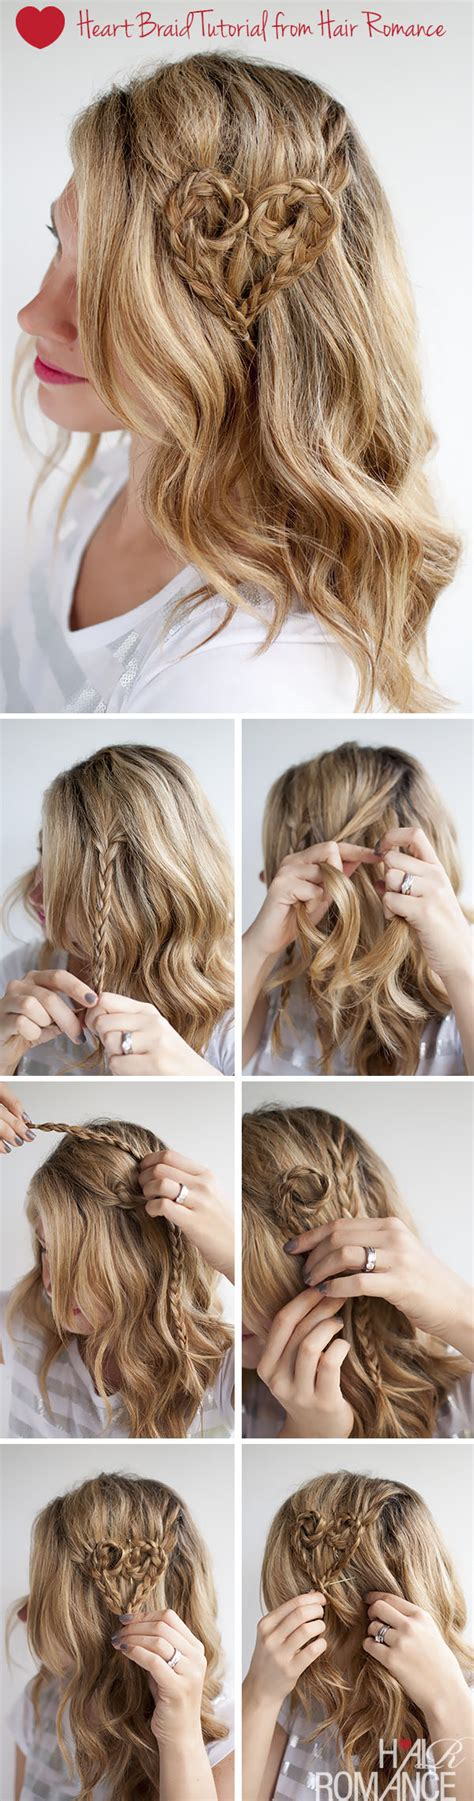 diy hairstyles we heart it valentine s day hairstyle tutorial heart braid hairstyle